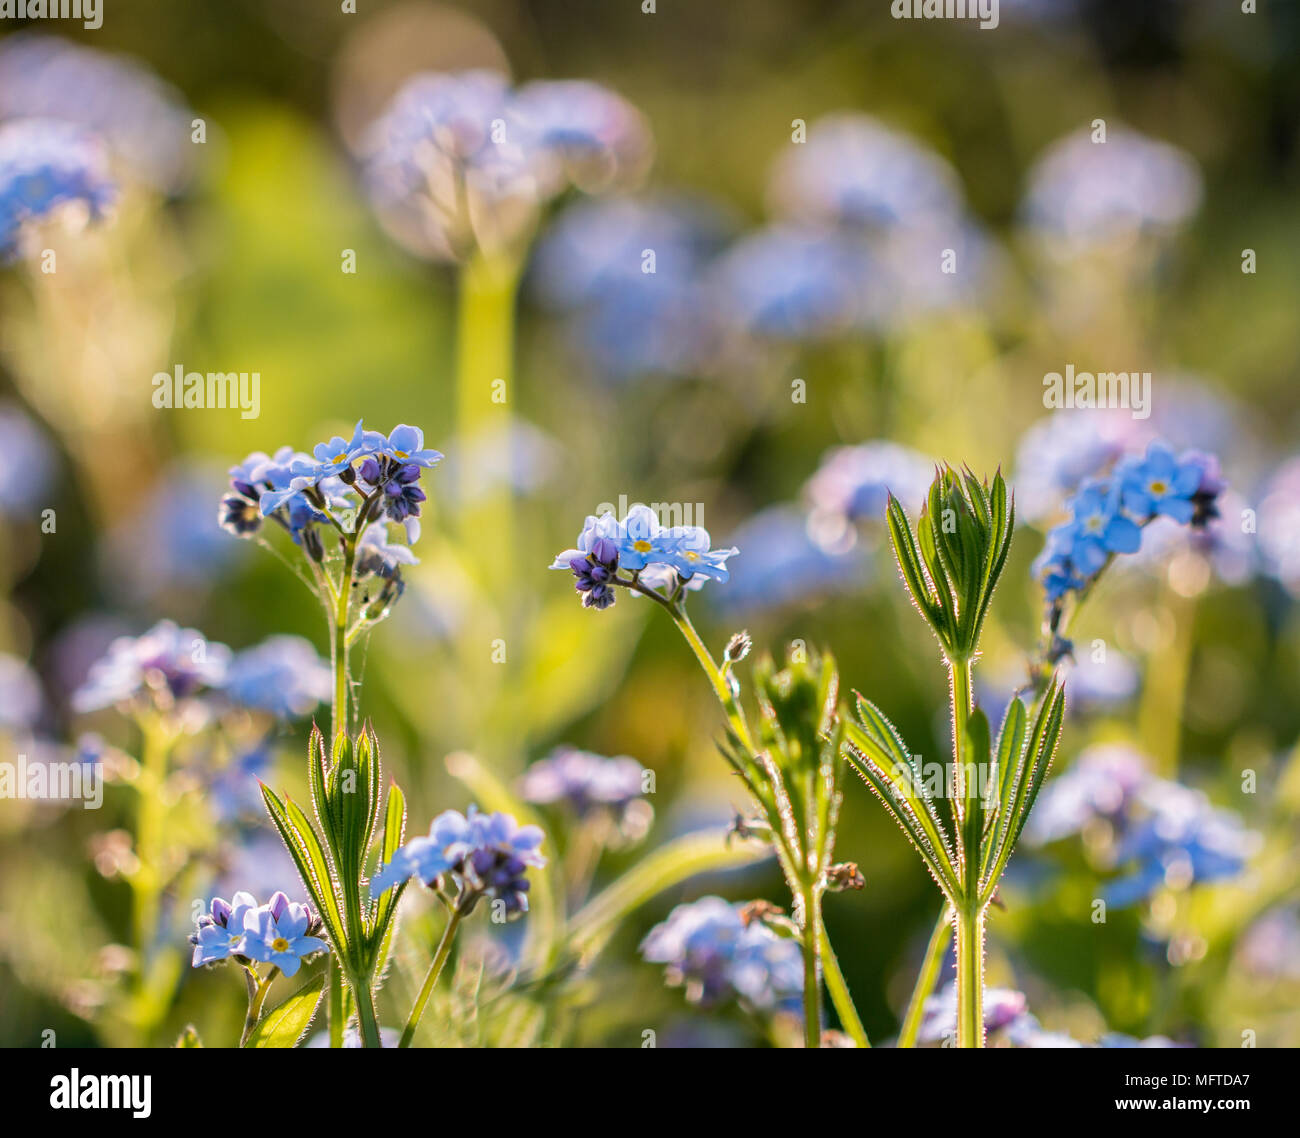 Myosotis Sylviatica, Forget Me Not, macro image showing delicate blue flowers with yellow centre and green foliage, Shepperton, England, U.K. Stock Photo